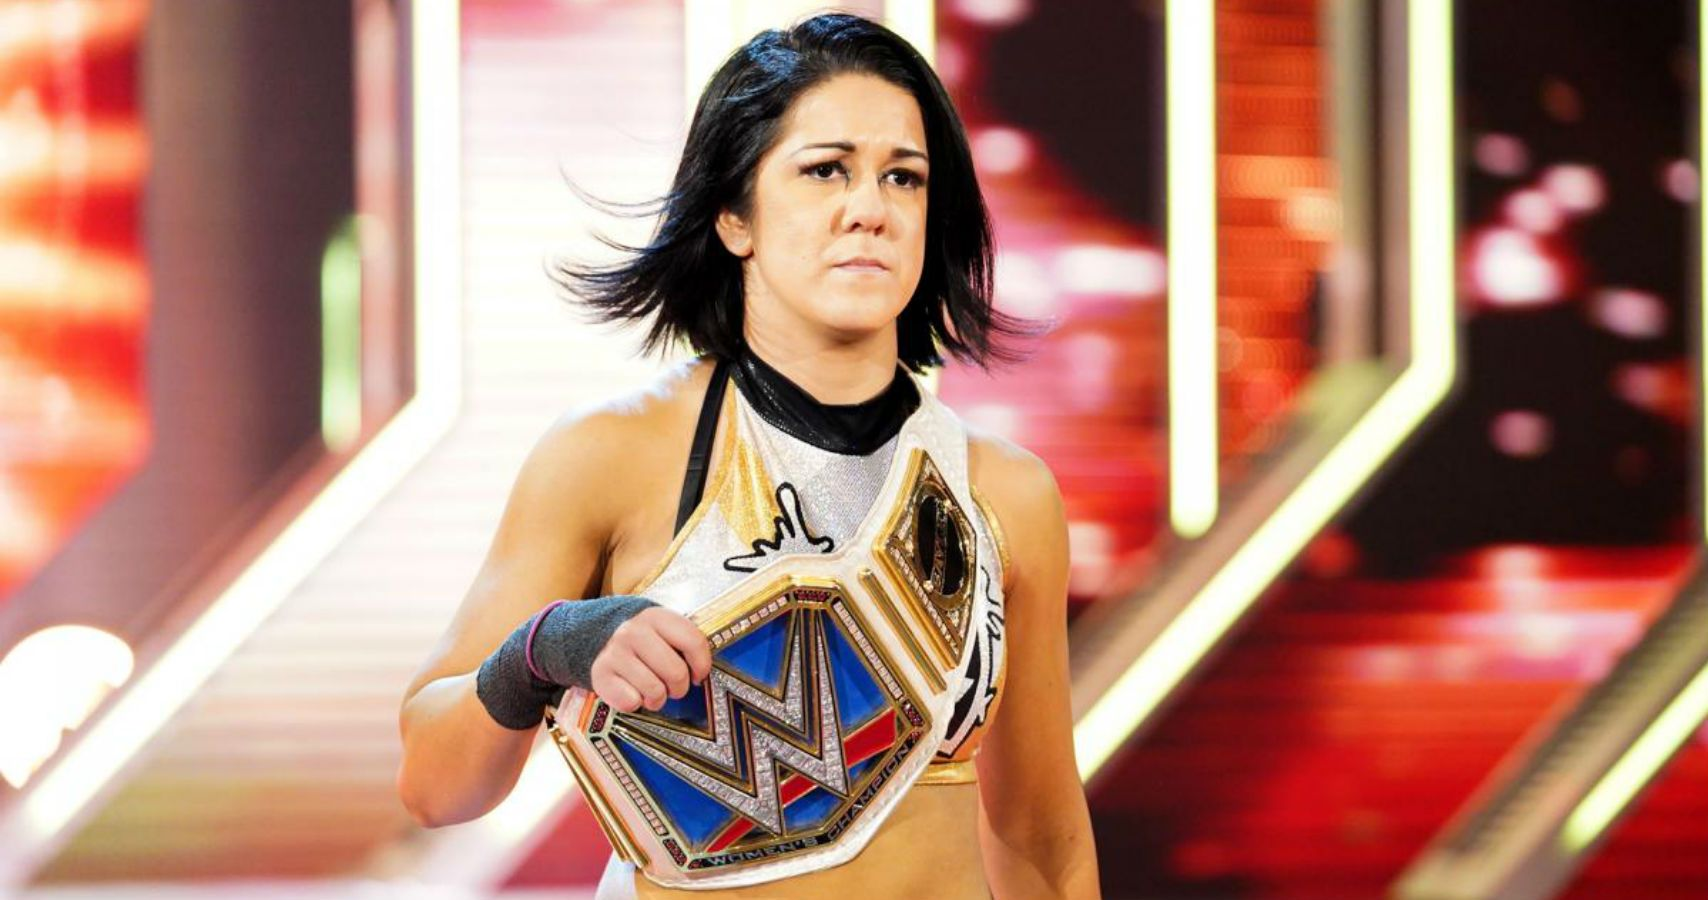 Hi, My Name is: Bayley - Cageside Seats